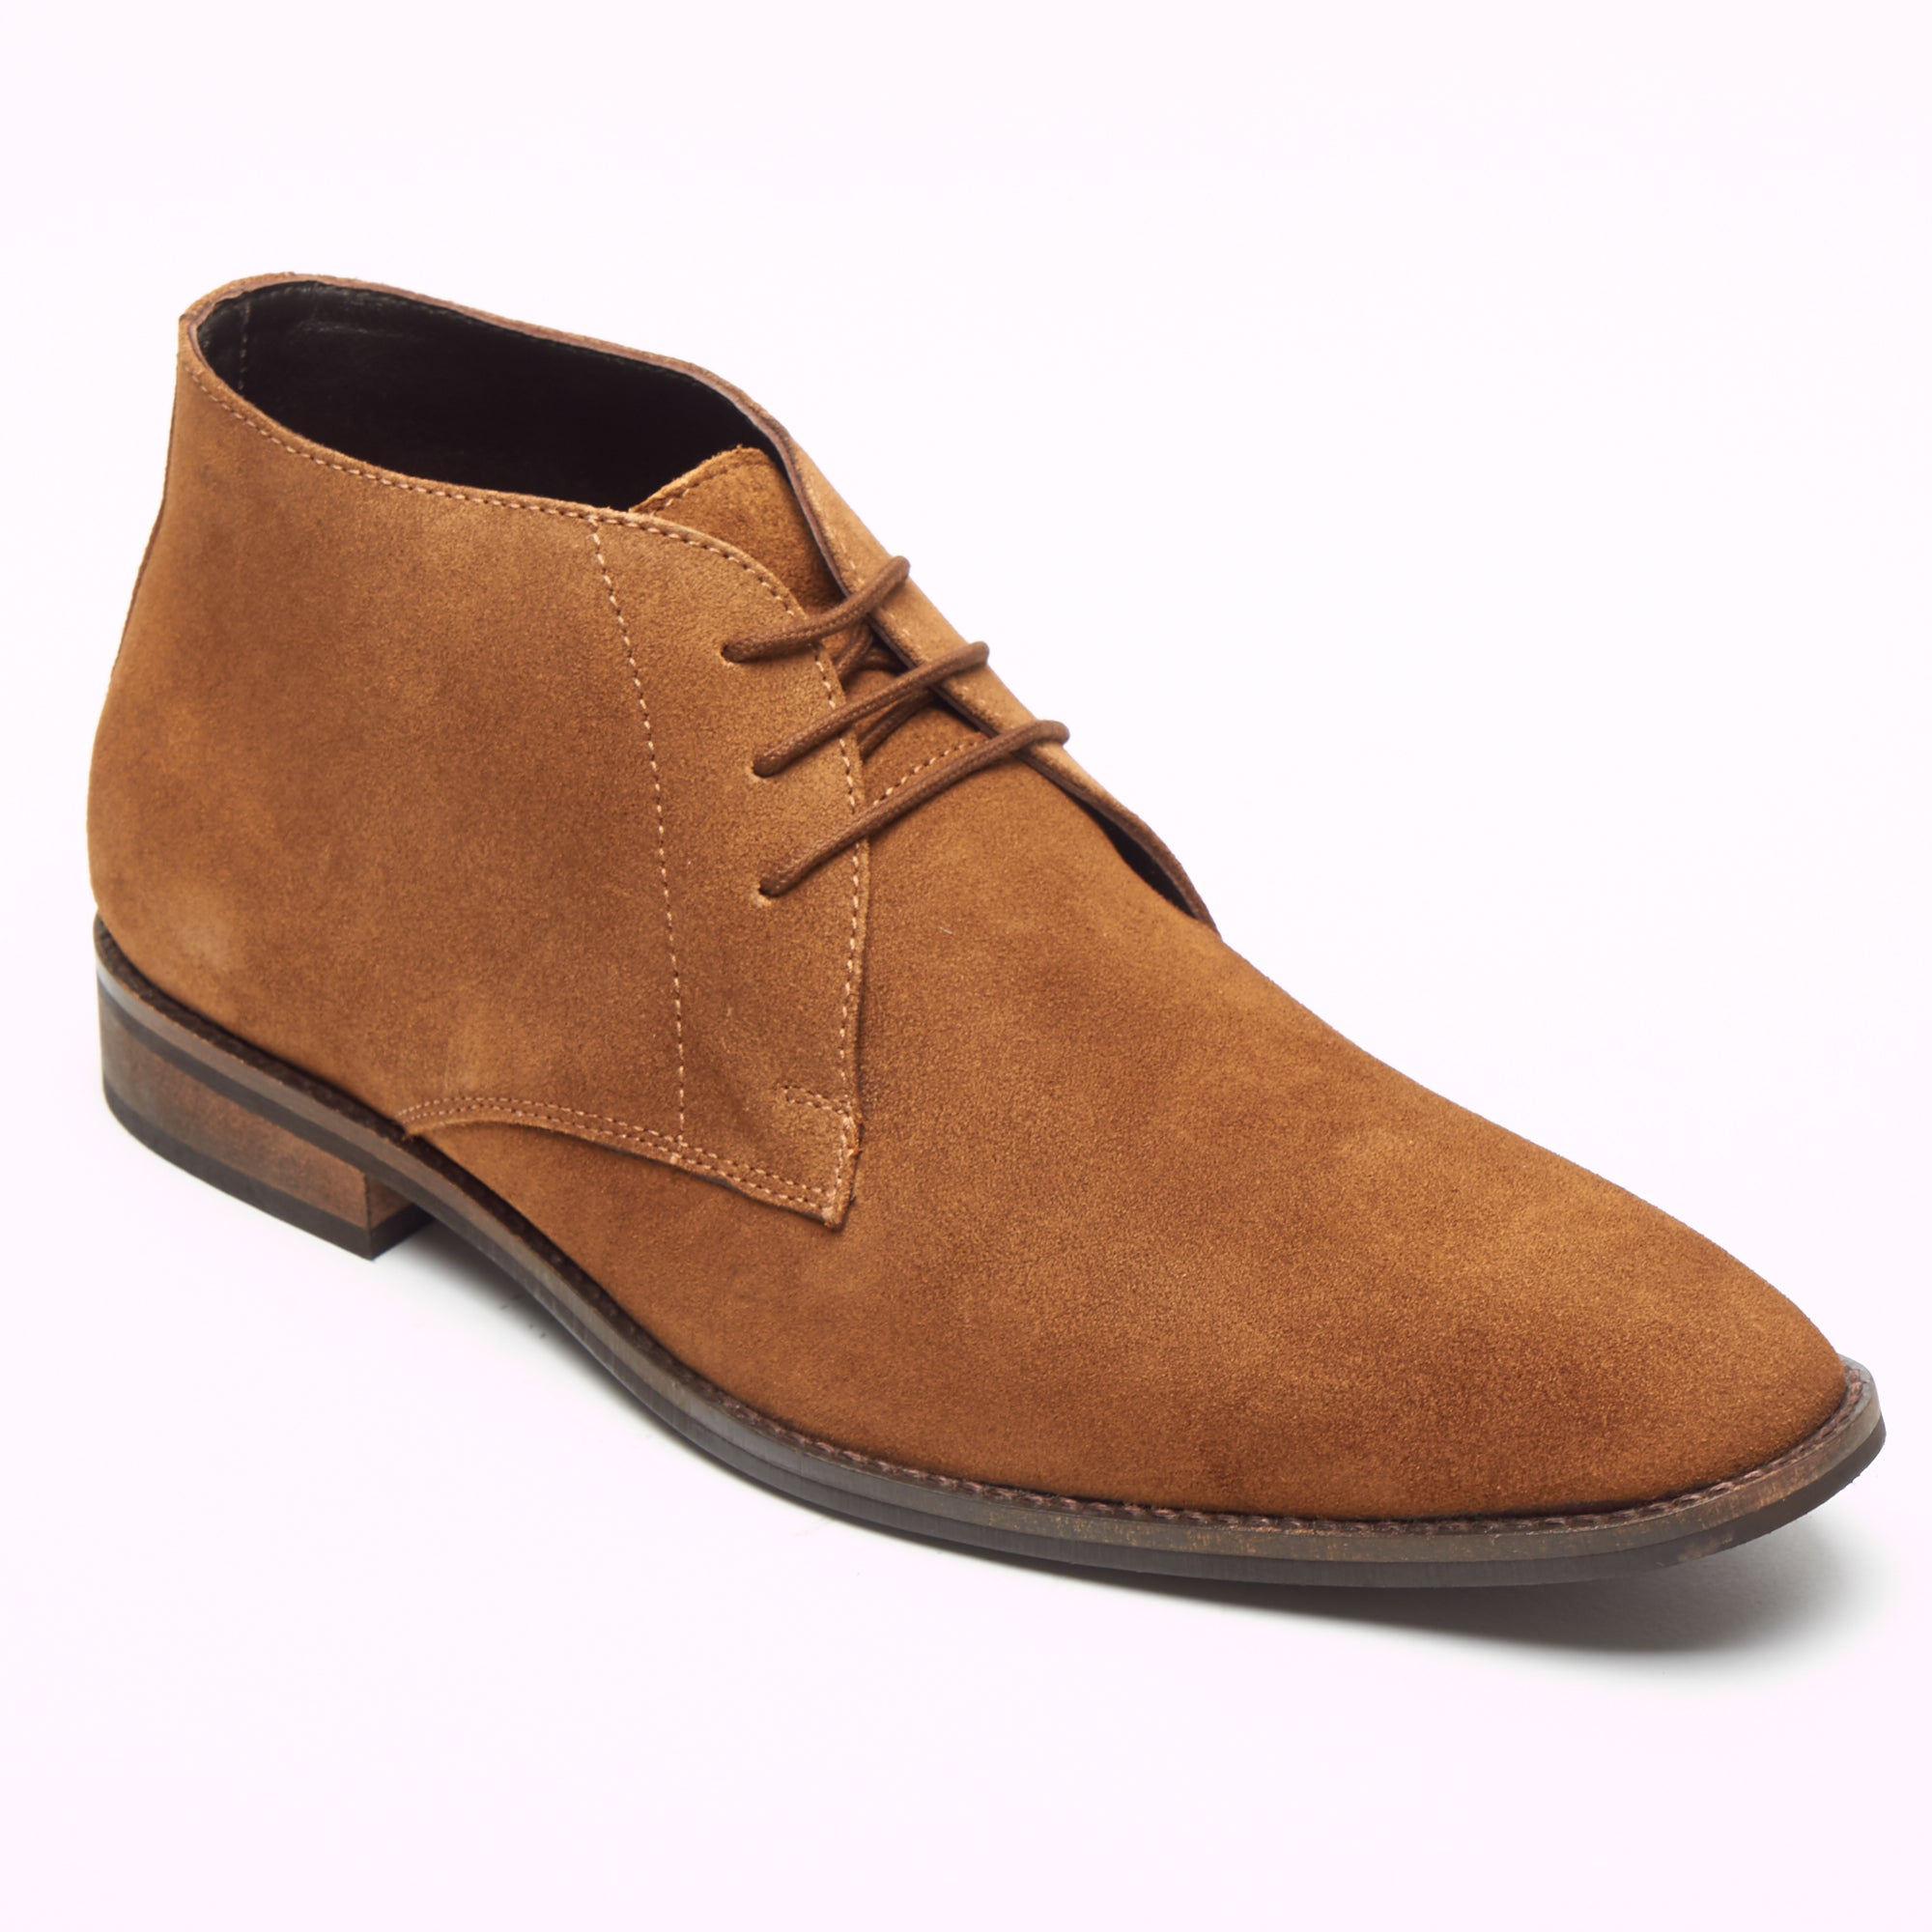 Mens Suede Ankle Boots - SF-251-Suede Tan